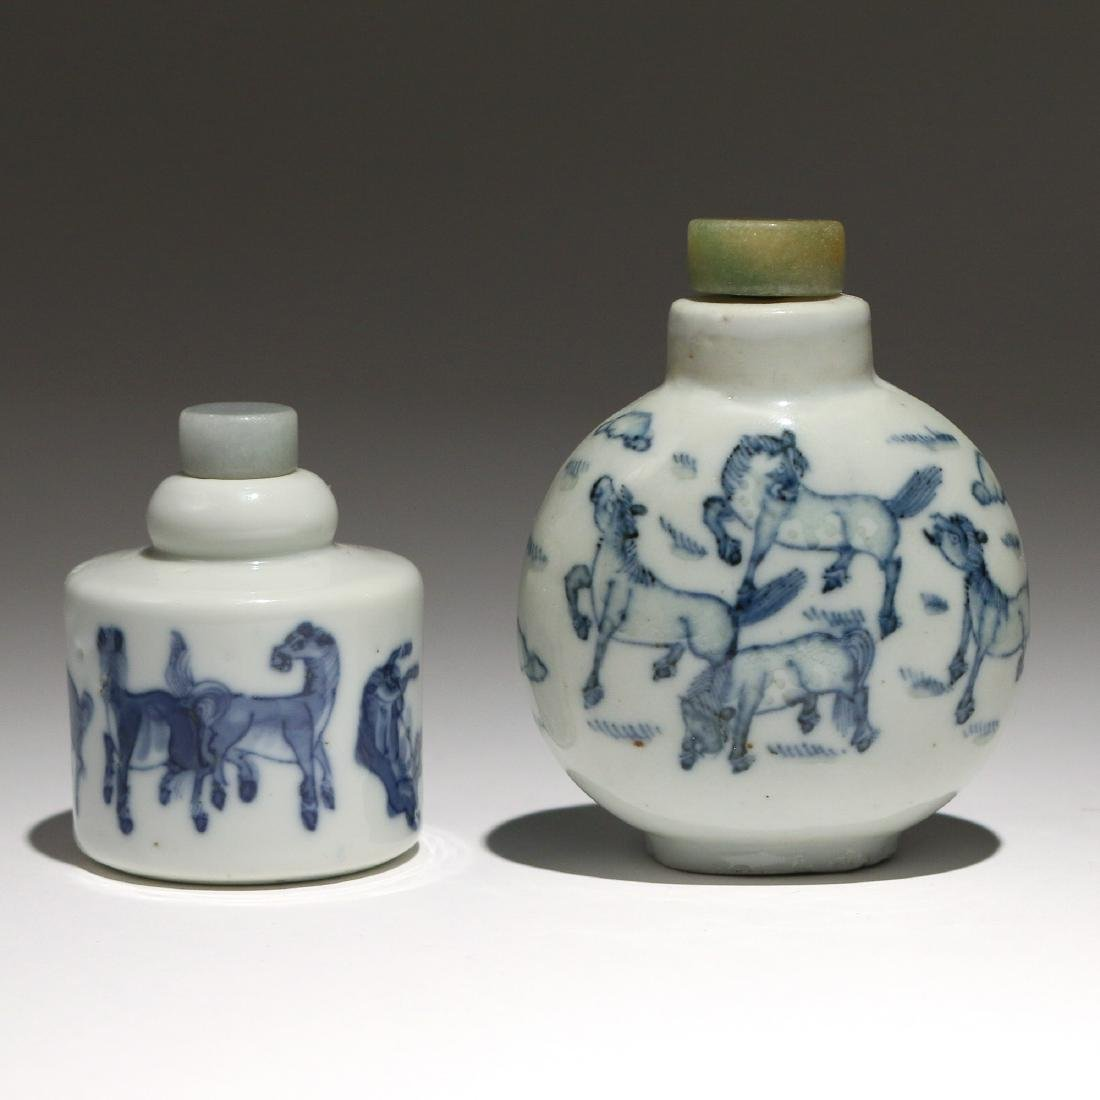 (2pc) CHINESE BLUE & WHITE PORCELAIN SNUFF BOTTLES